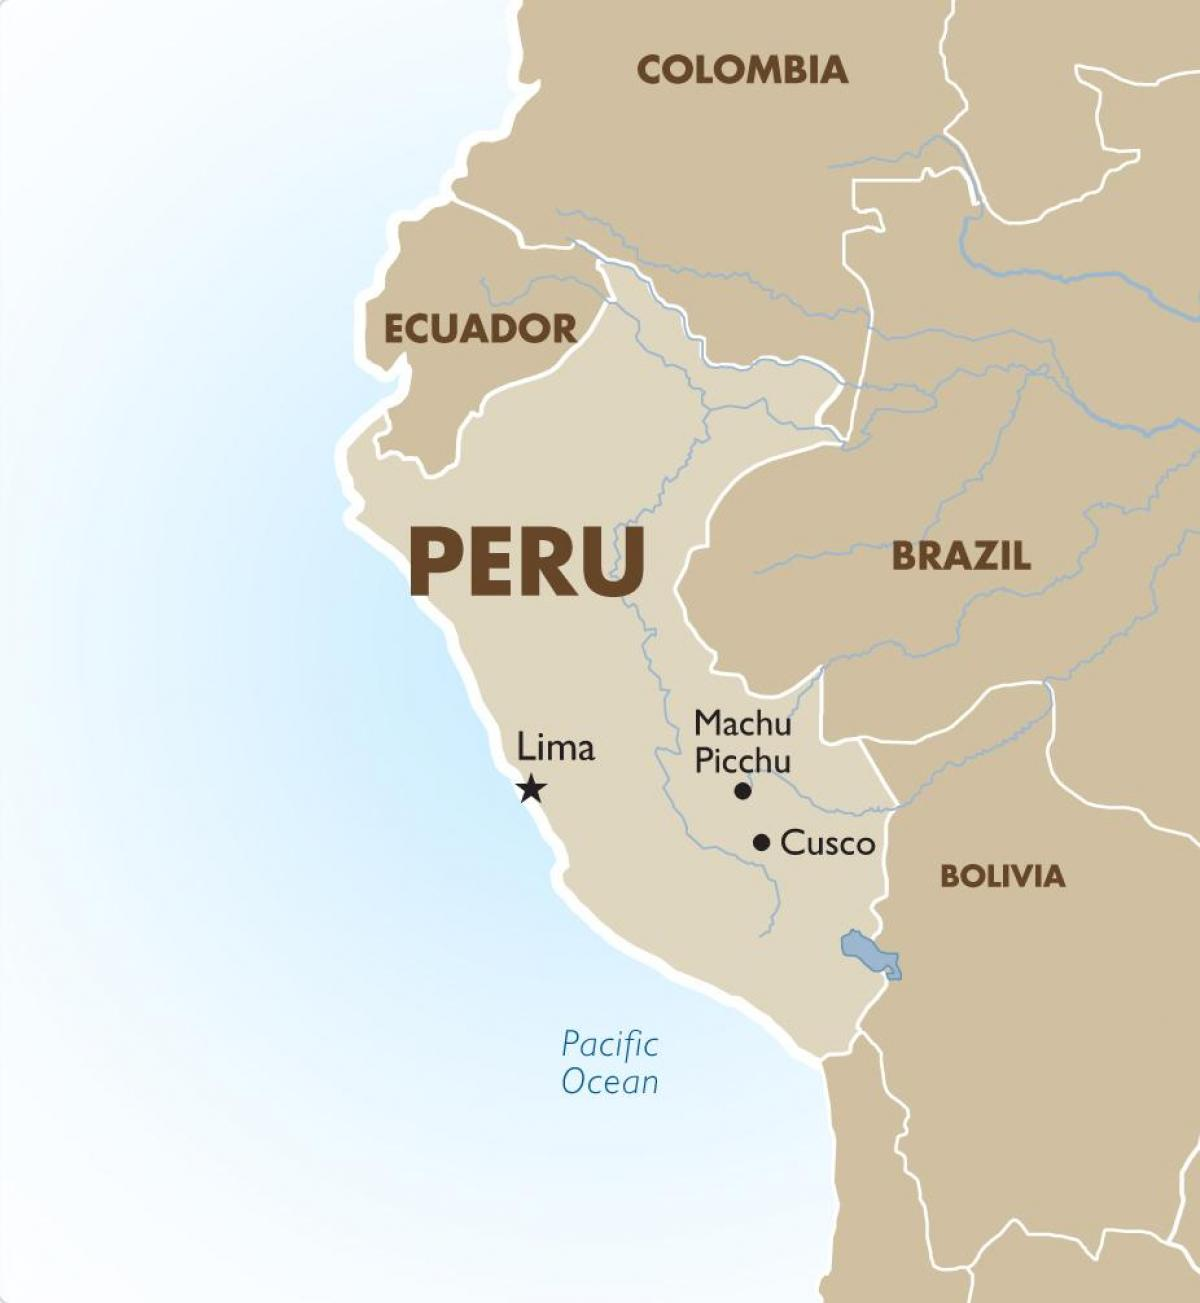 map of Peru and surrounding countries